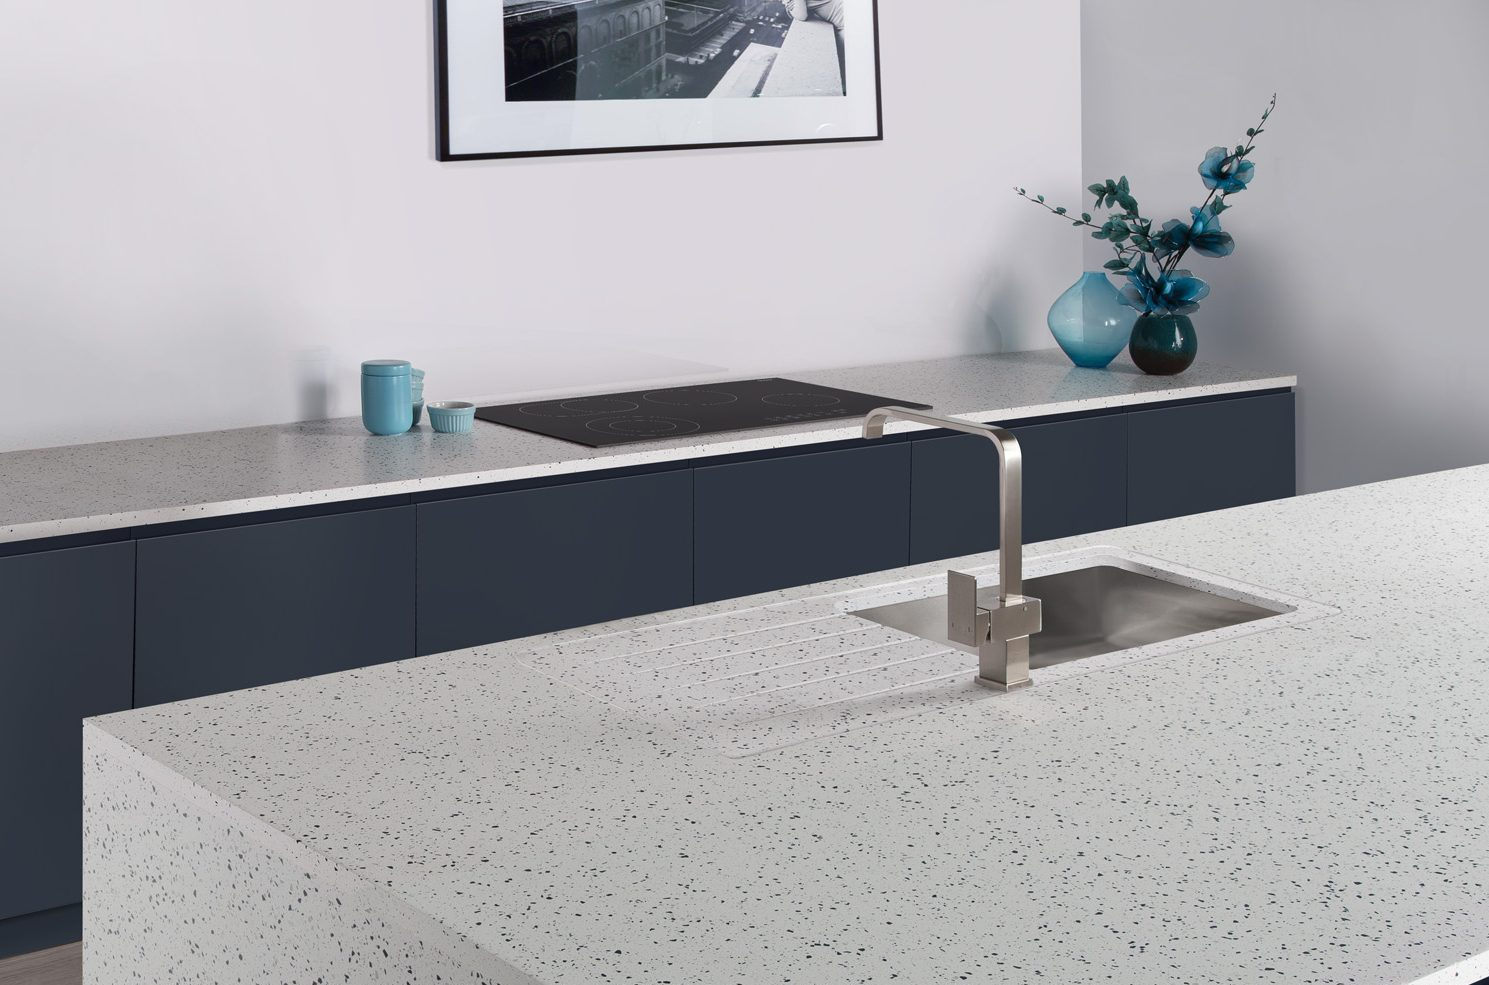 Ice Blue minerva worksurface